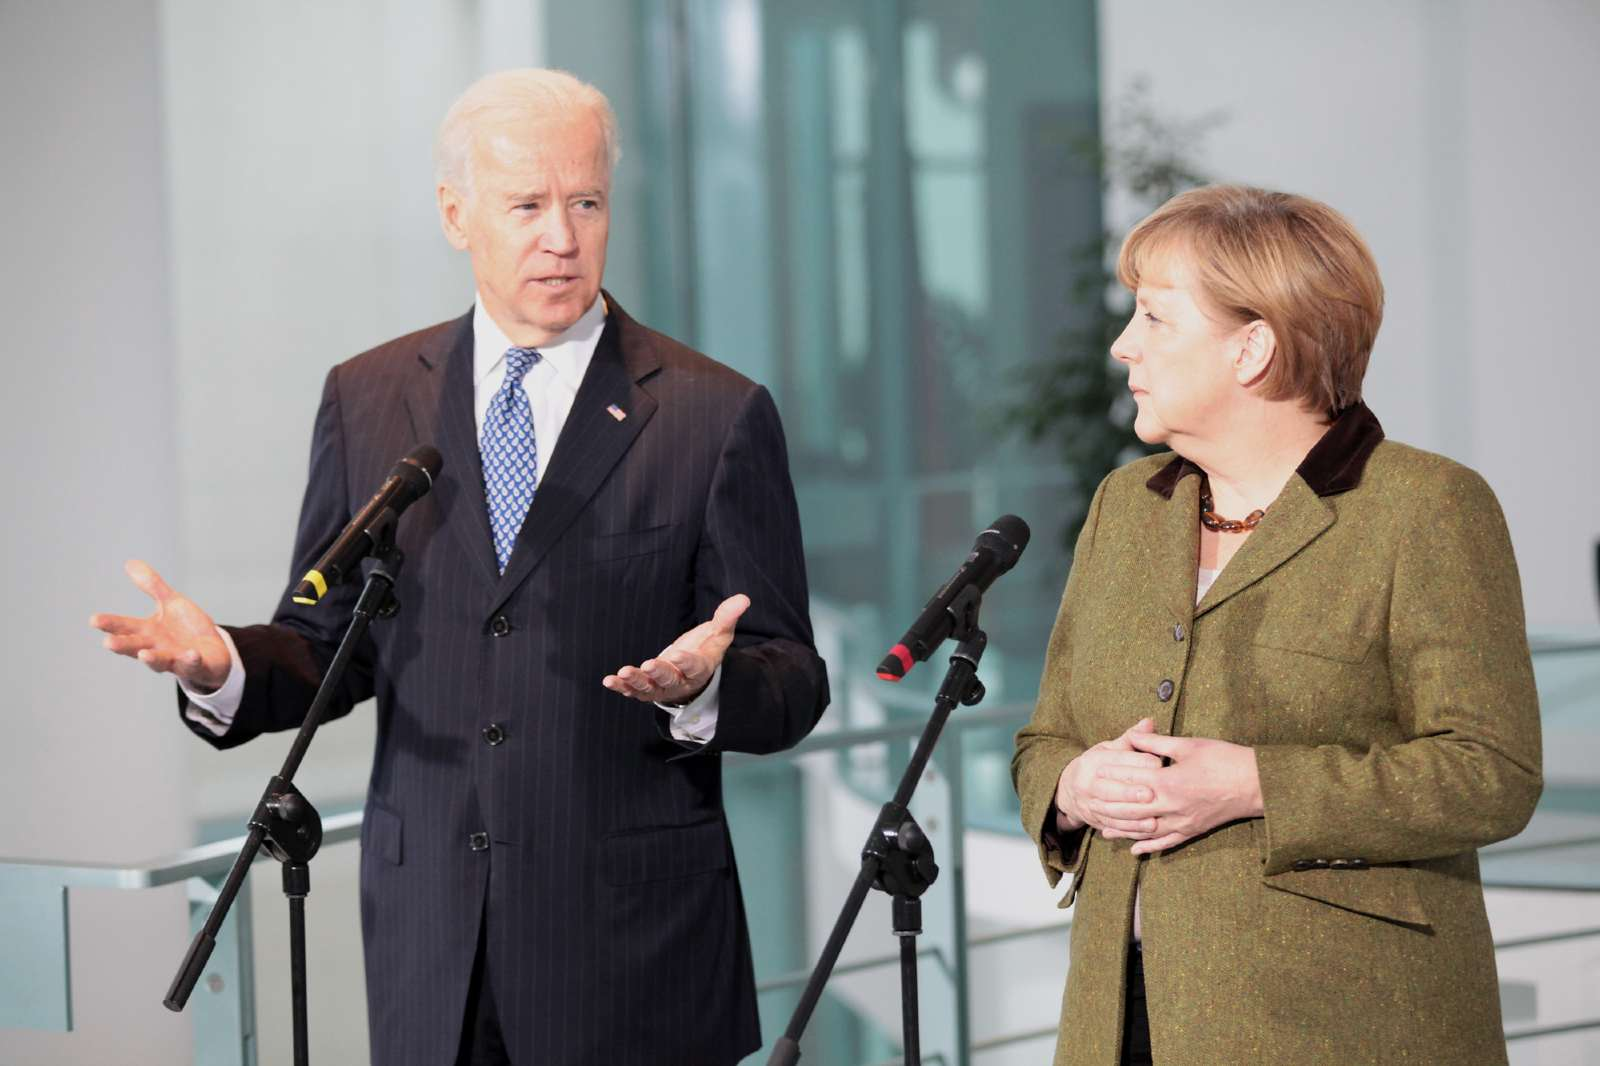 Vice President Joe Biden gives his remarks to the press. February 1, 2013